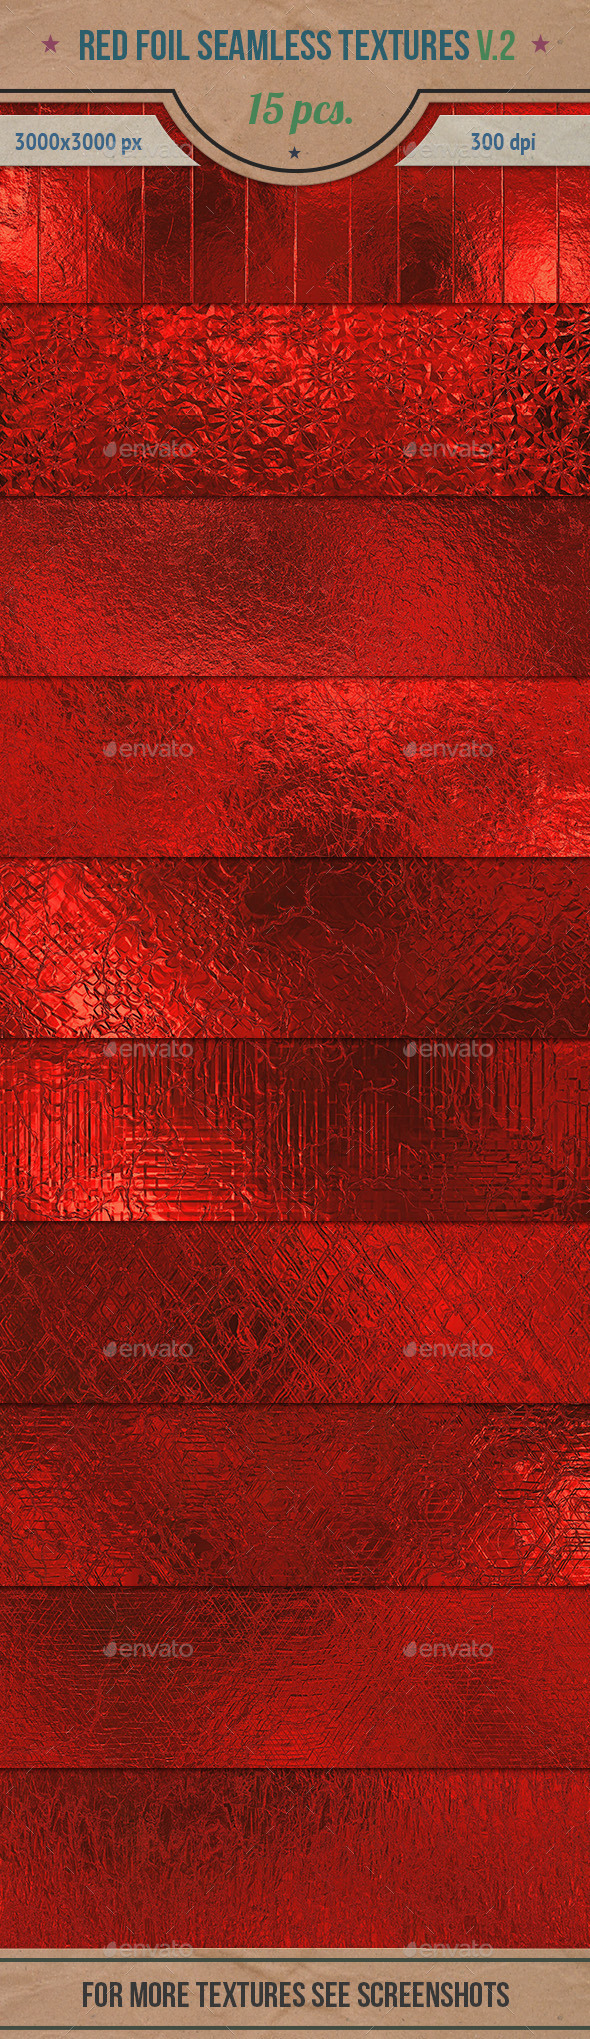 GraphicRiver Red Foil Seamless HD Textures Pack v.2 10784470